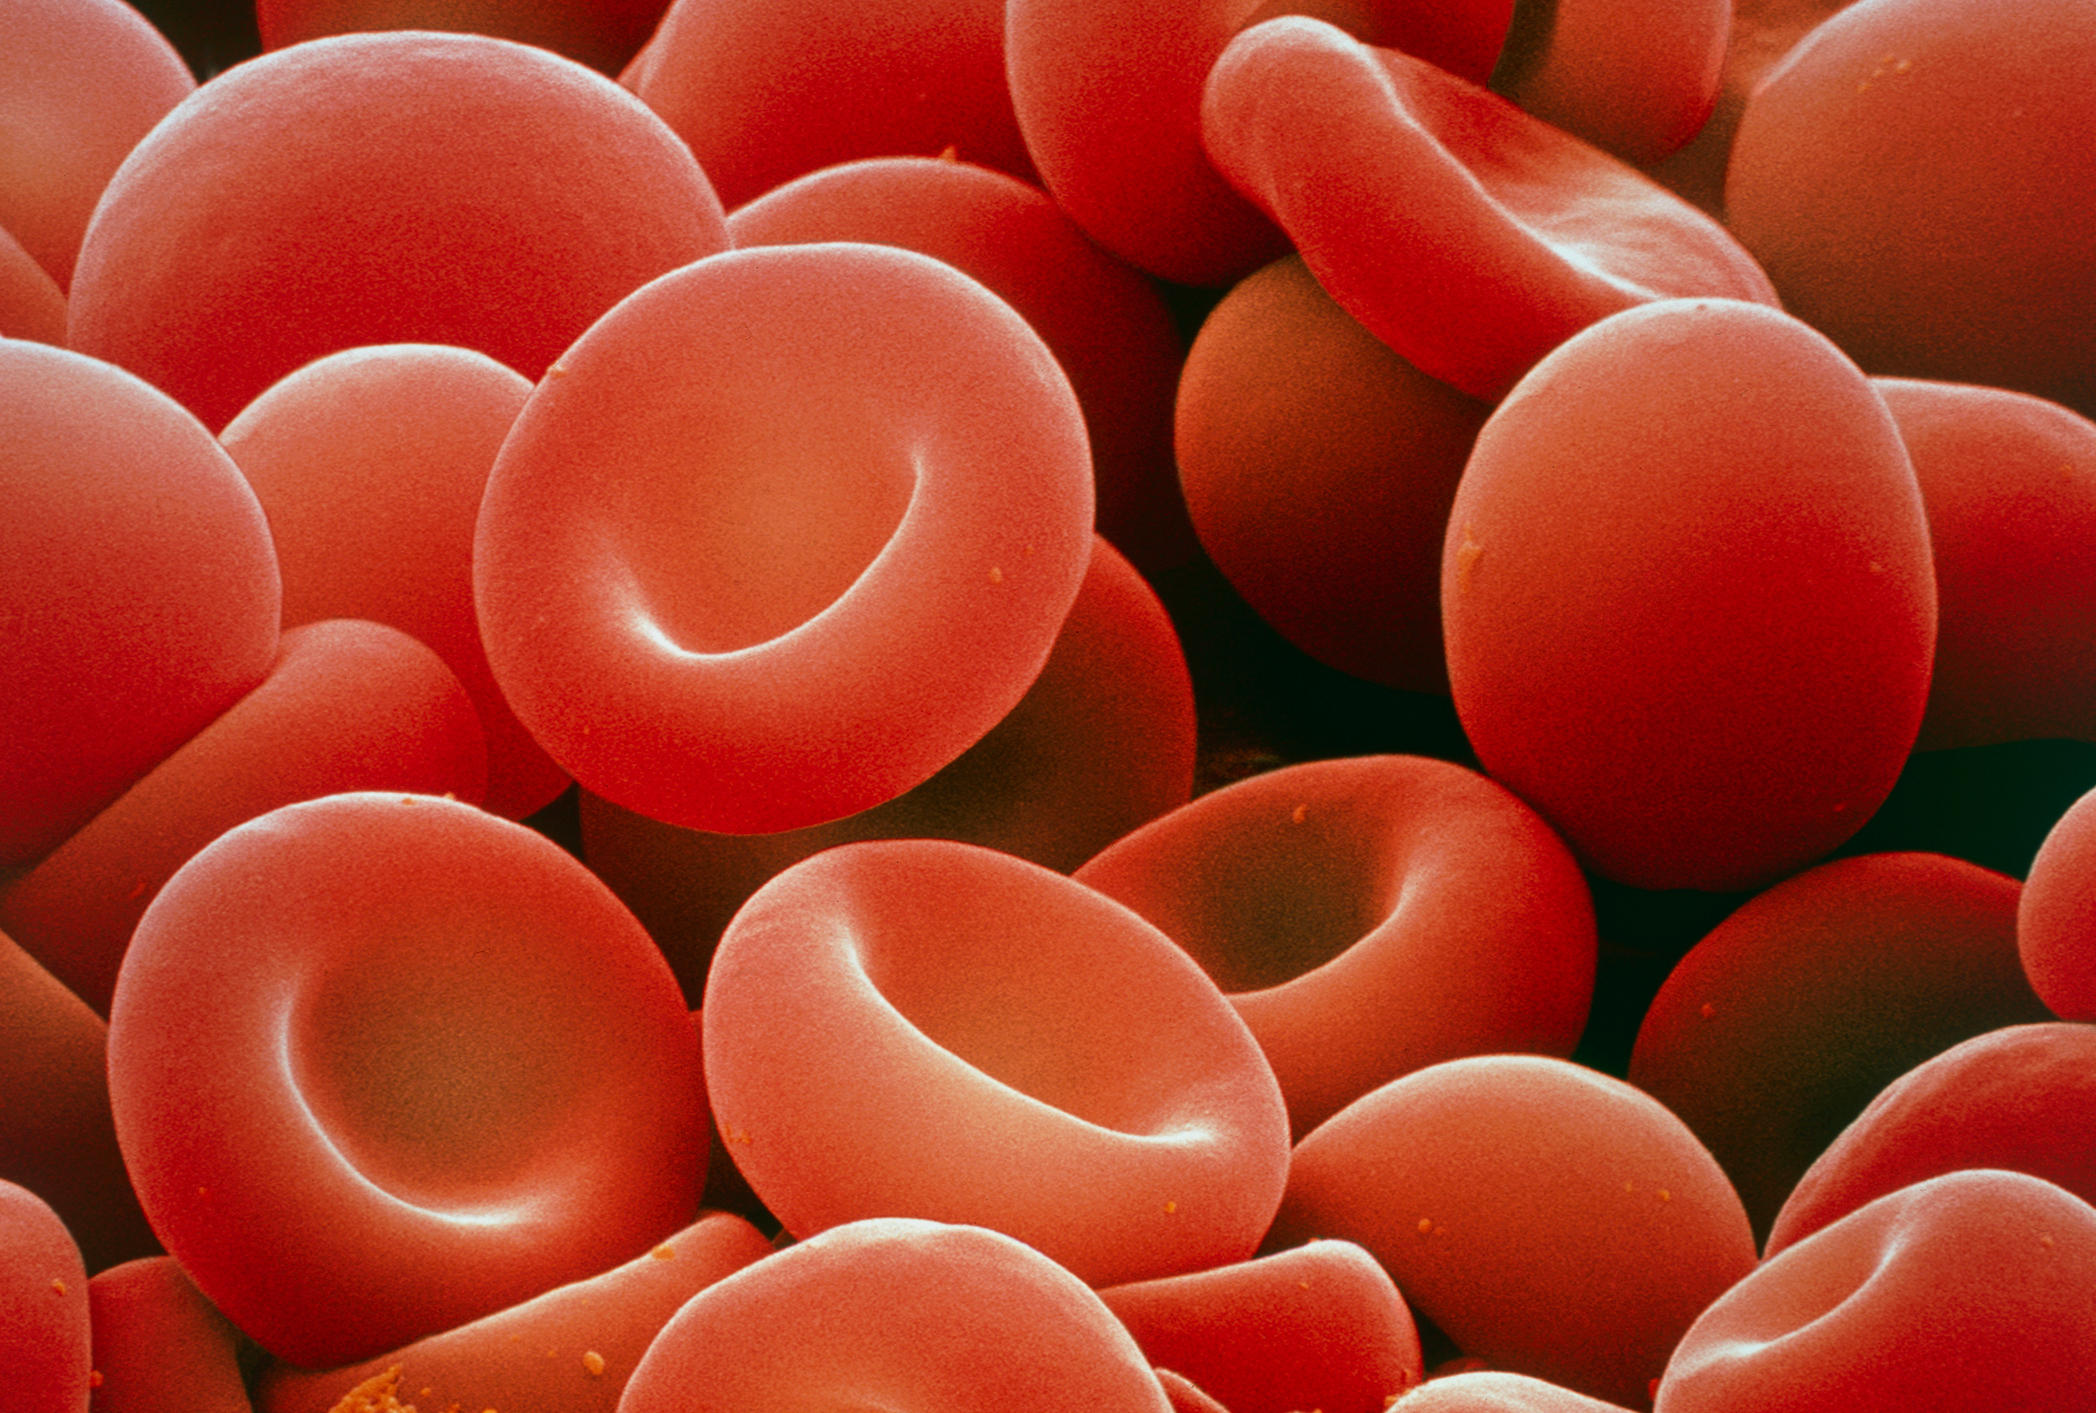 Gene therapy helps patients avoid blood transfusion